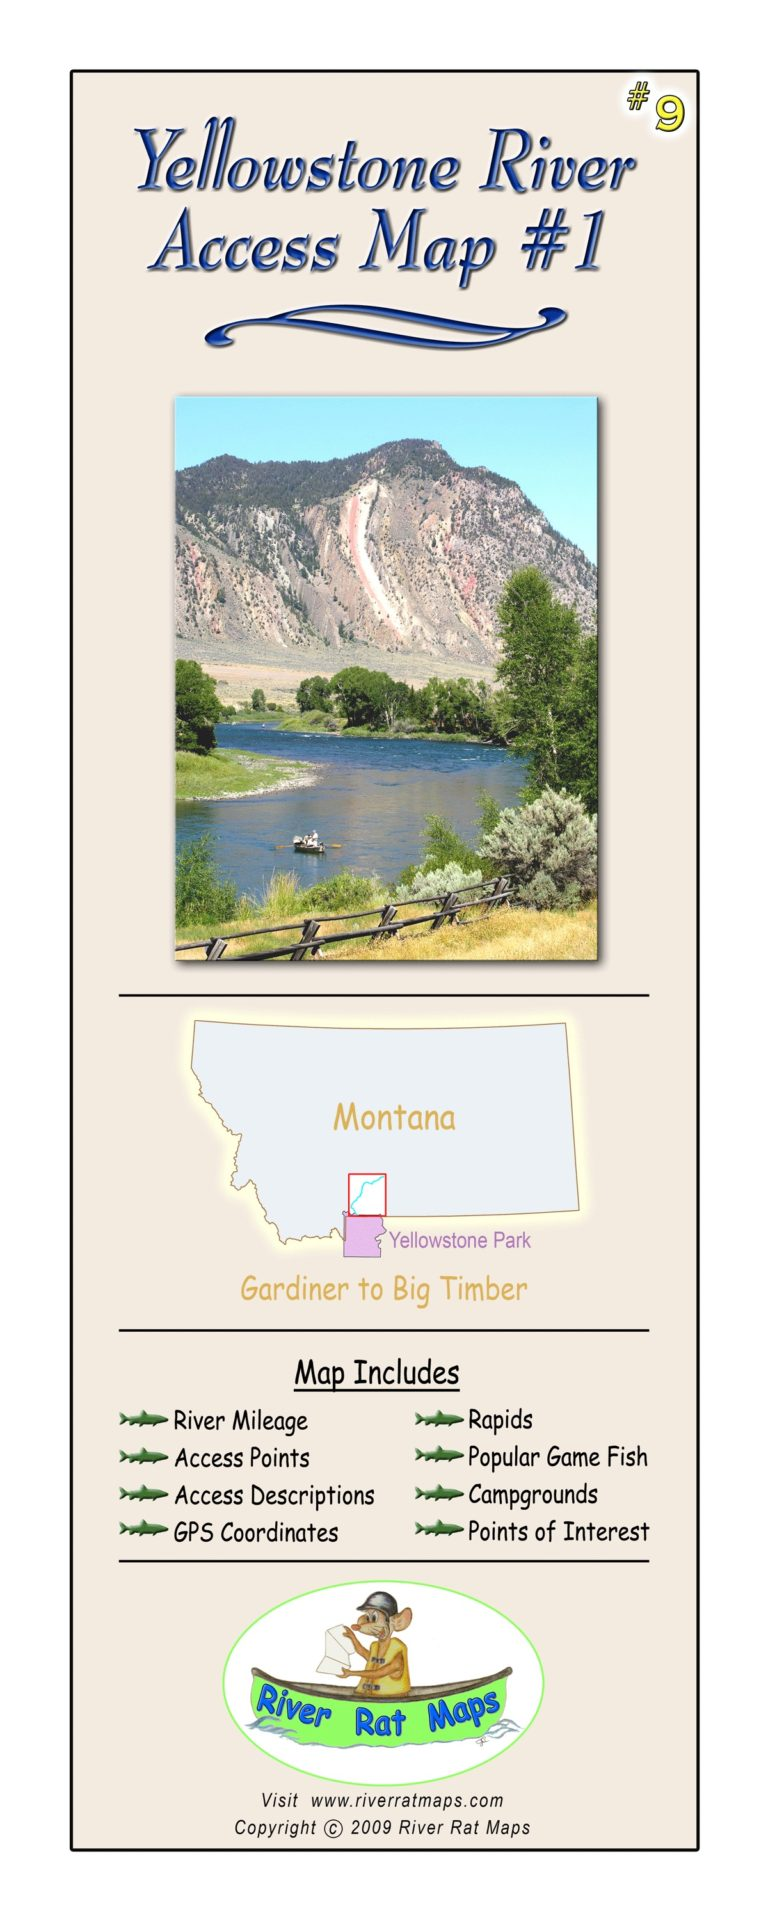 Yellowstone River Map #1 by River Rat Maps